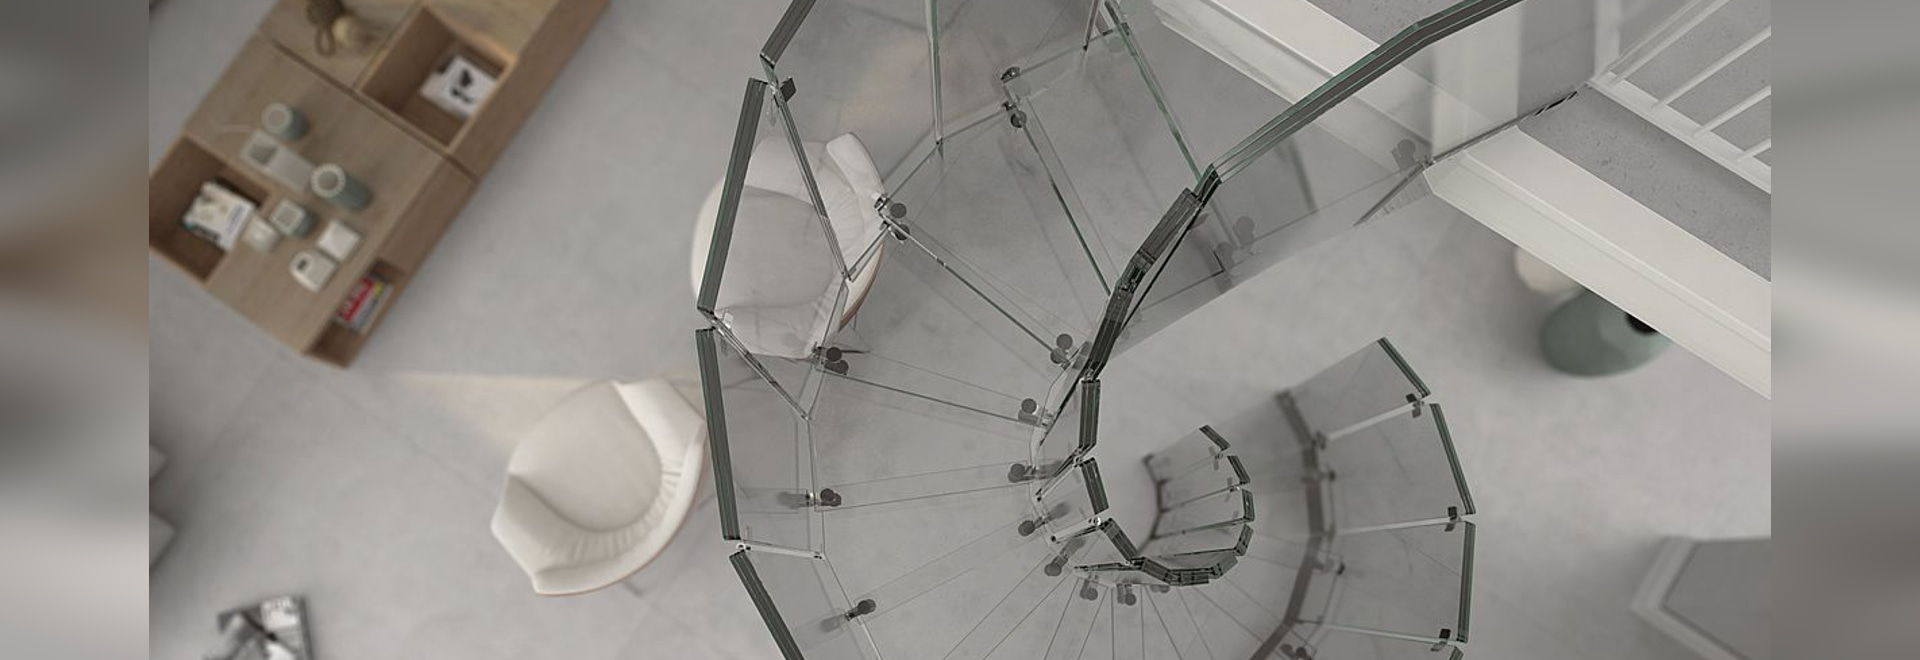 Helical design stairs, glass, glass, glass...